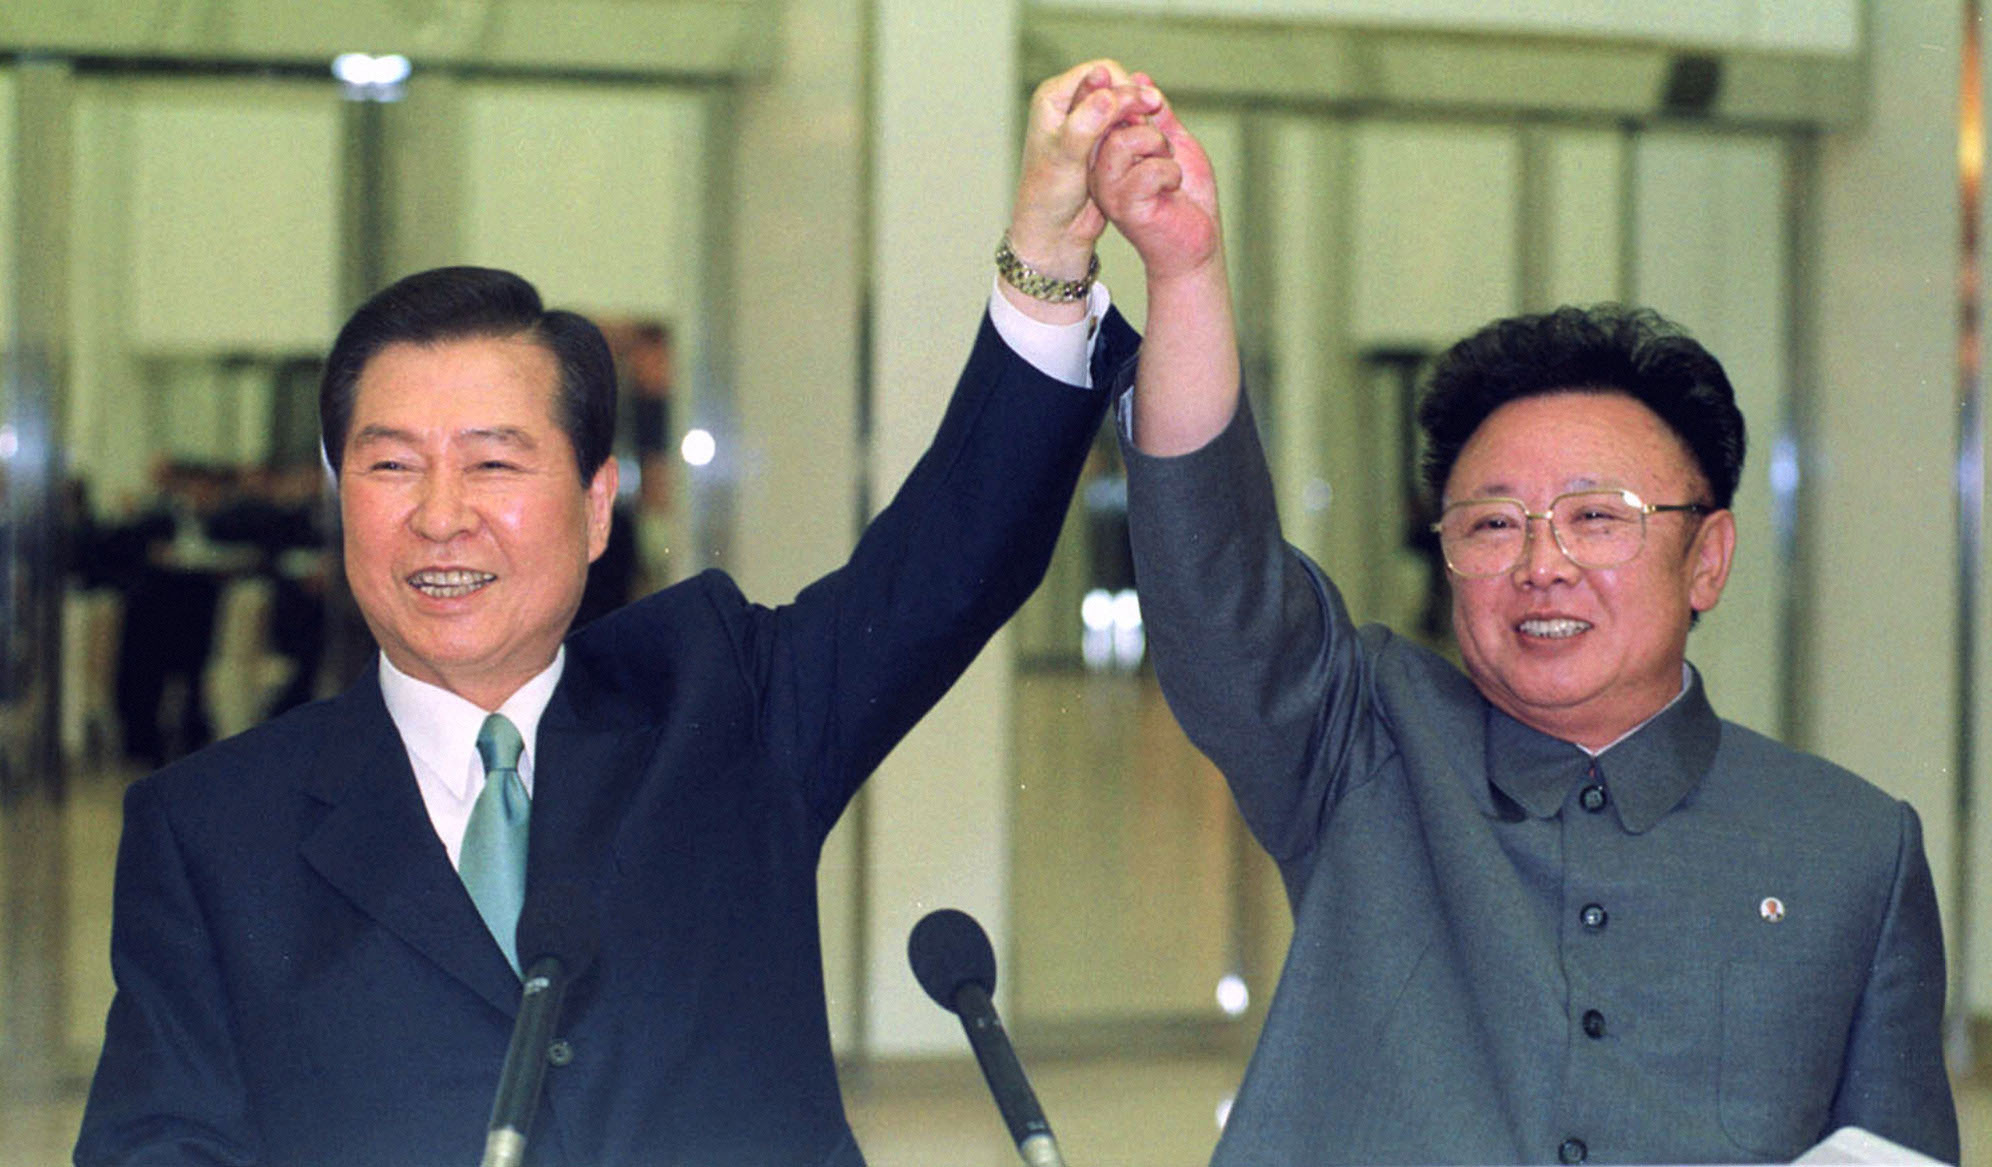 In this June 14, 2000, file photo, South Korean President Kim Dae-jung, left, and North Korean leader Kim Jong II raise their arms together before signing a joint declaration during a summit in Pyongyang, North Korea. The recent inter-Korean summit, the first in more than a decade, followed meetings between Kim Jong Un's father, Kim Jong II, with South Korean presidents in 2007 and 2000. ( Yonhap Pool Photo via AP )